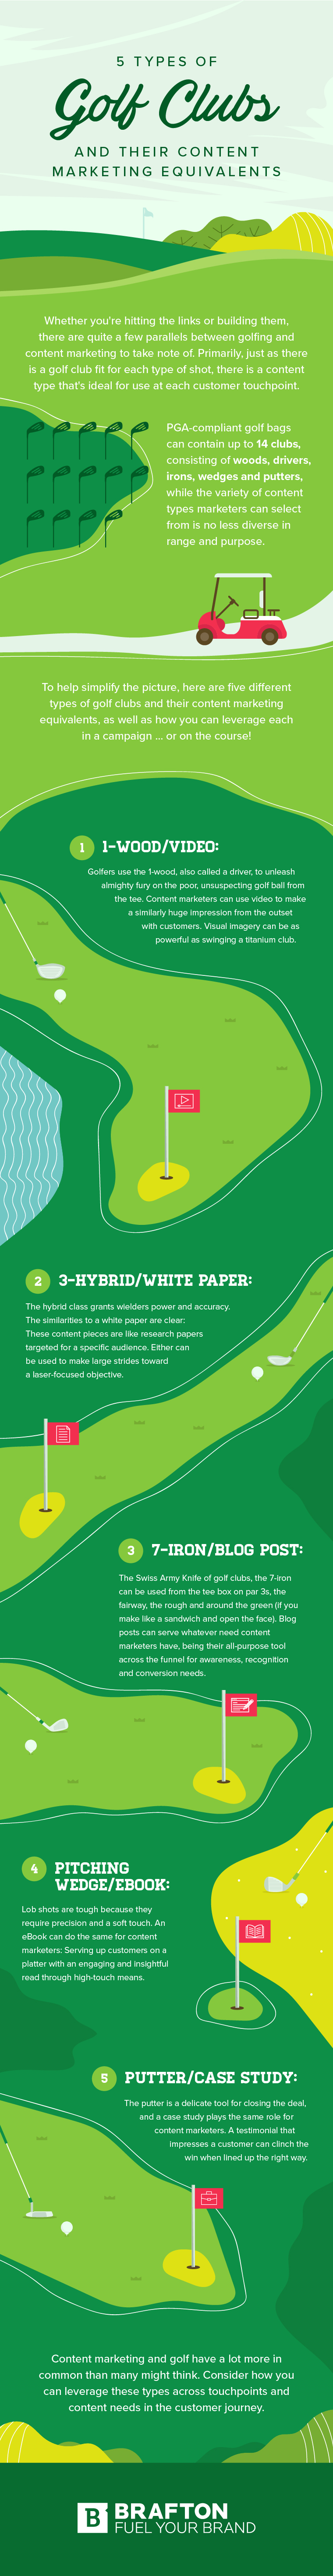 infographic outlines key content marketing elements by comparing them to golf clubs